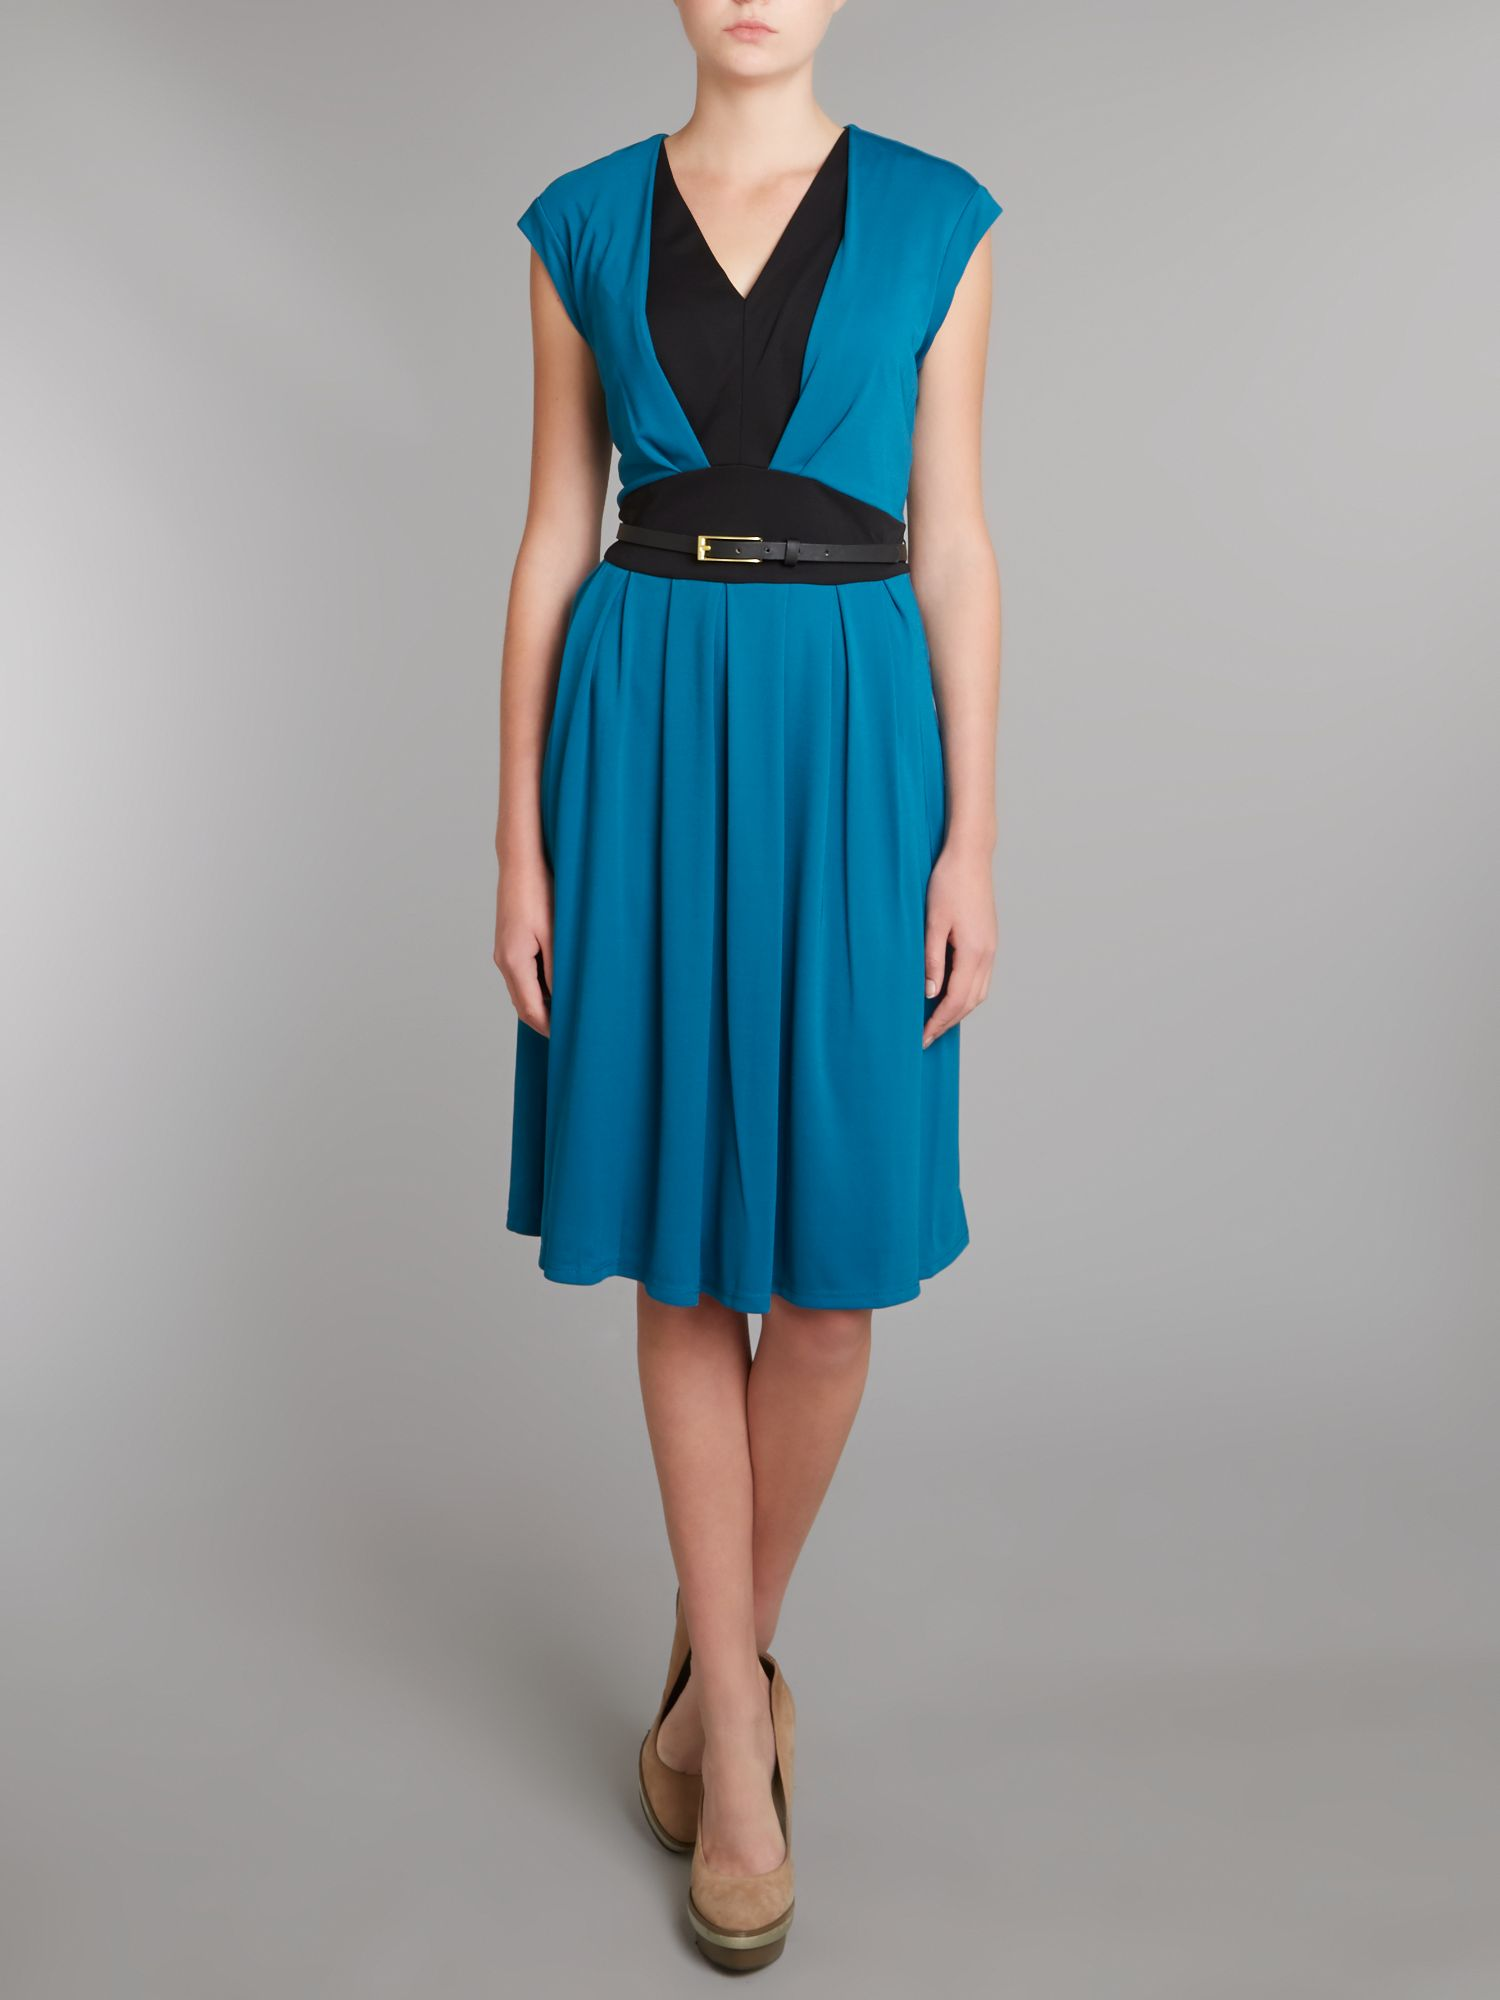 Colour Block Cap Sleeve Dress with Belt